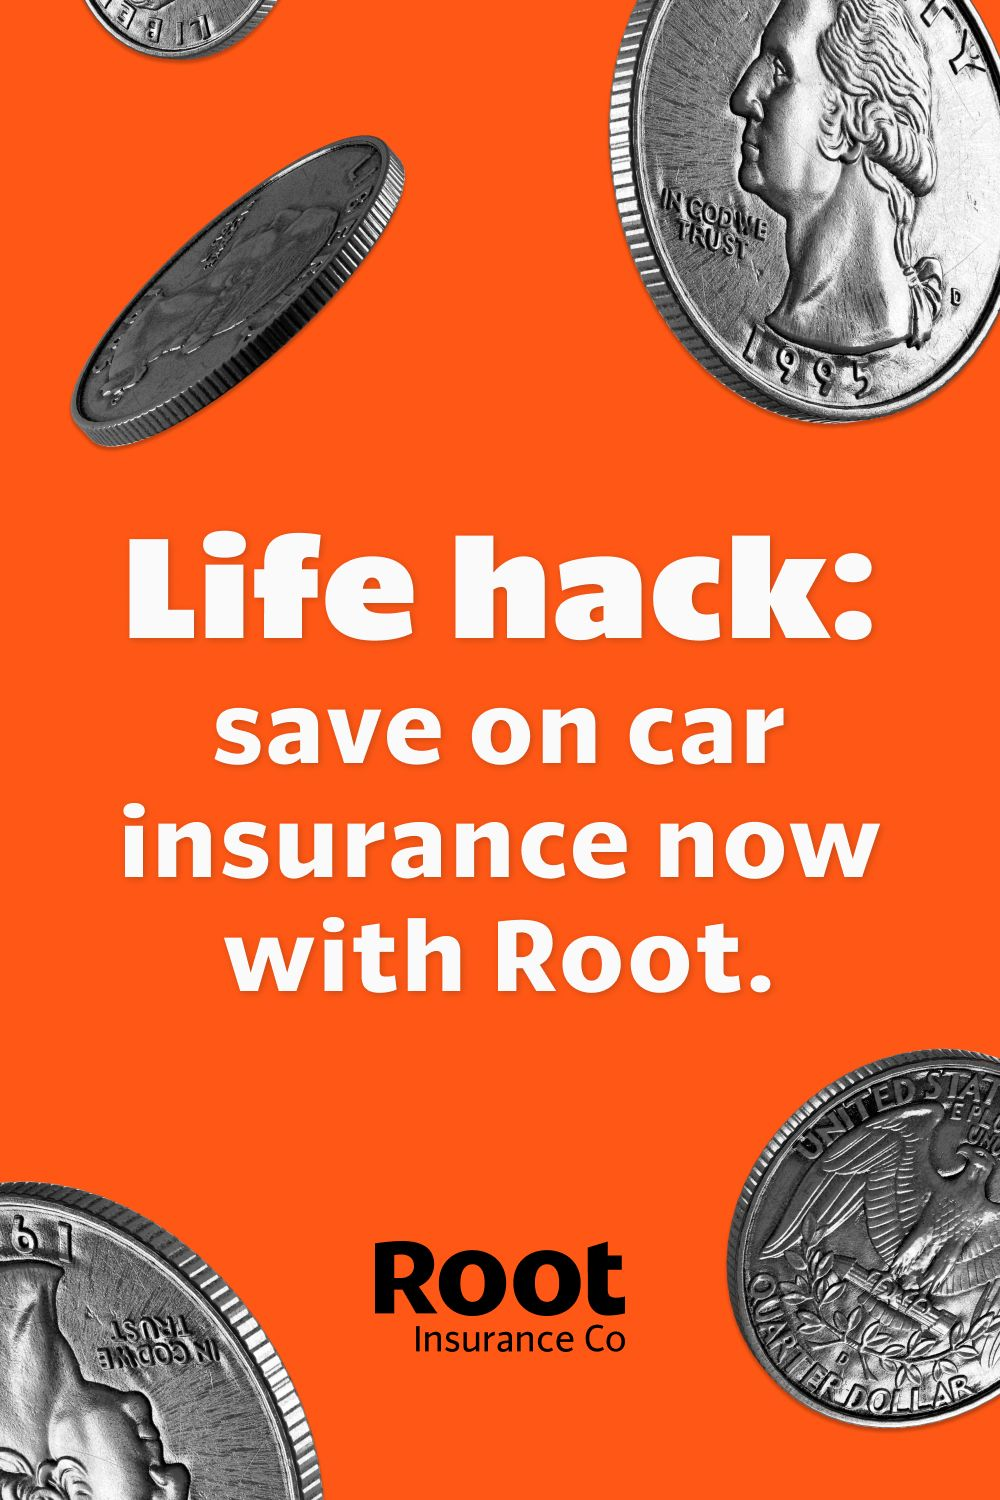 Safe drivers save up to 52 on car insurance with Root